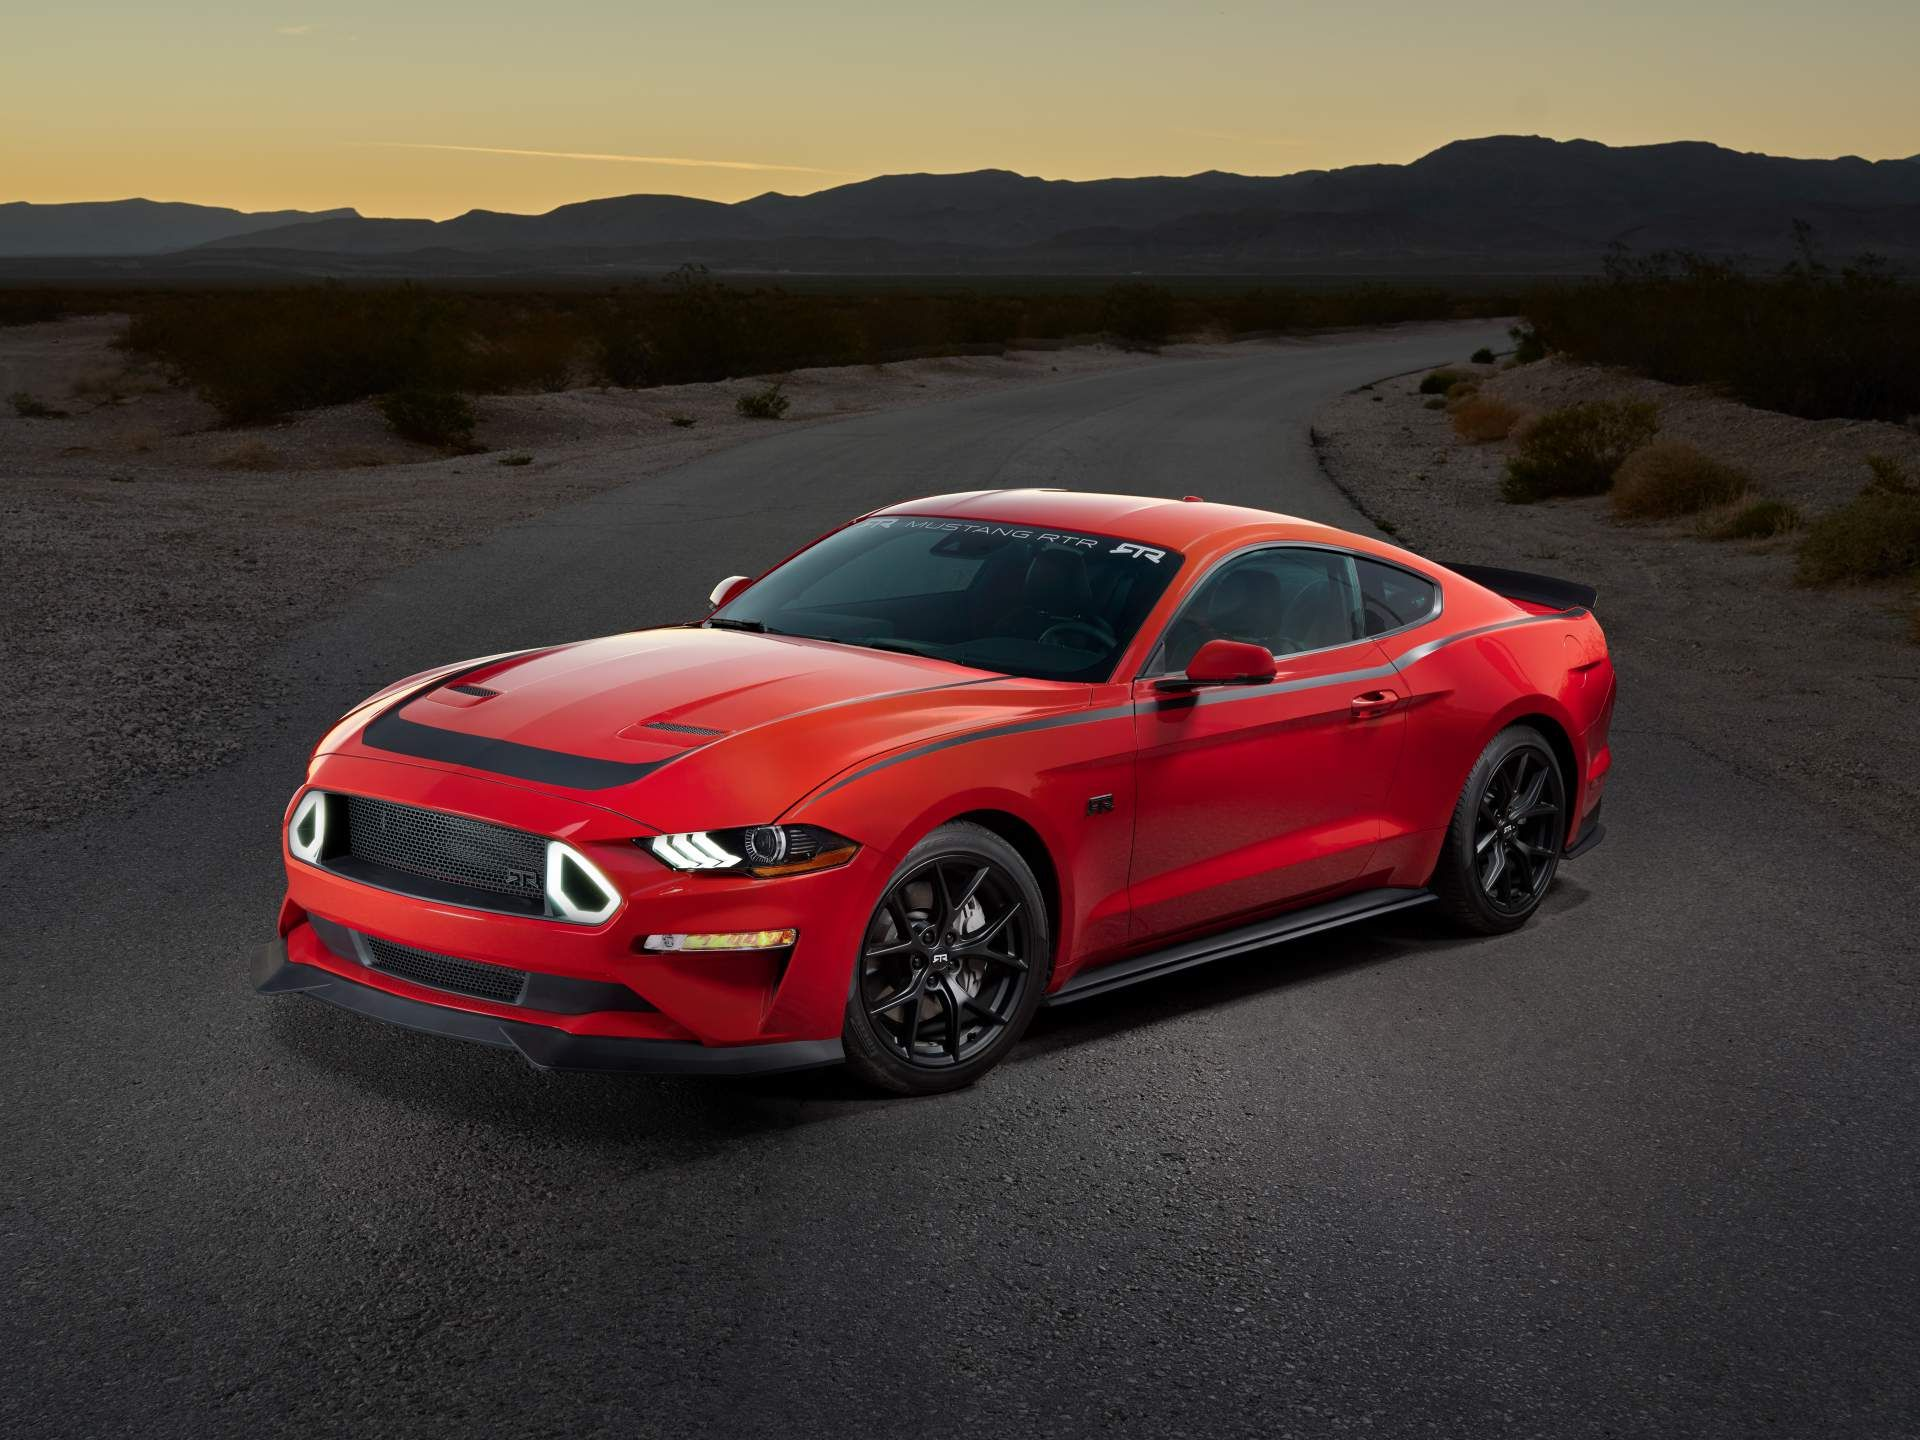 Series 1 Mustang Rtr By Ford Performance Debuts At Sema Show Carscoops Ford Mustang Mustang 2019 Ford